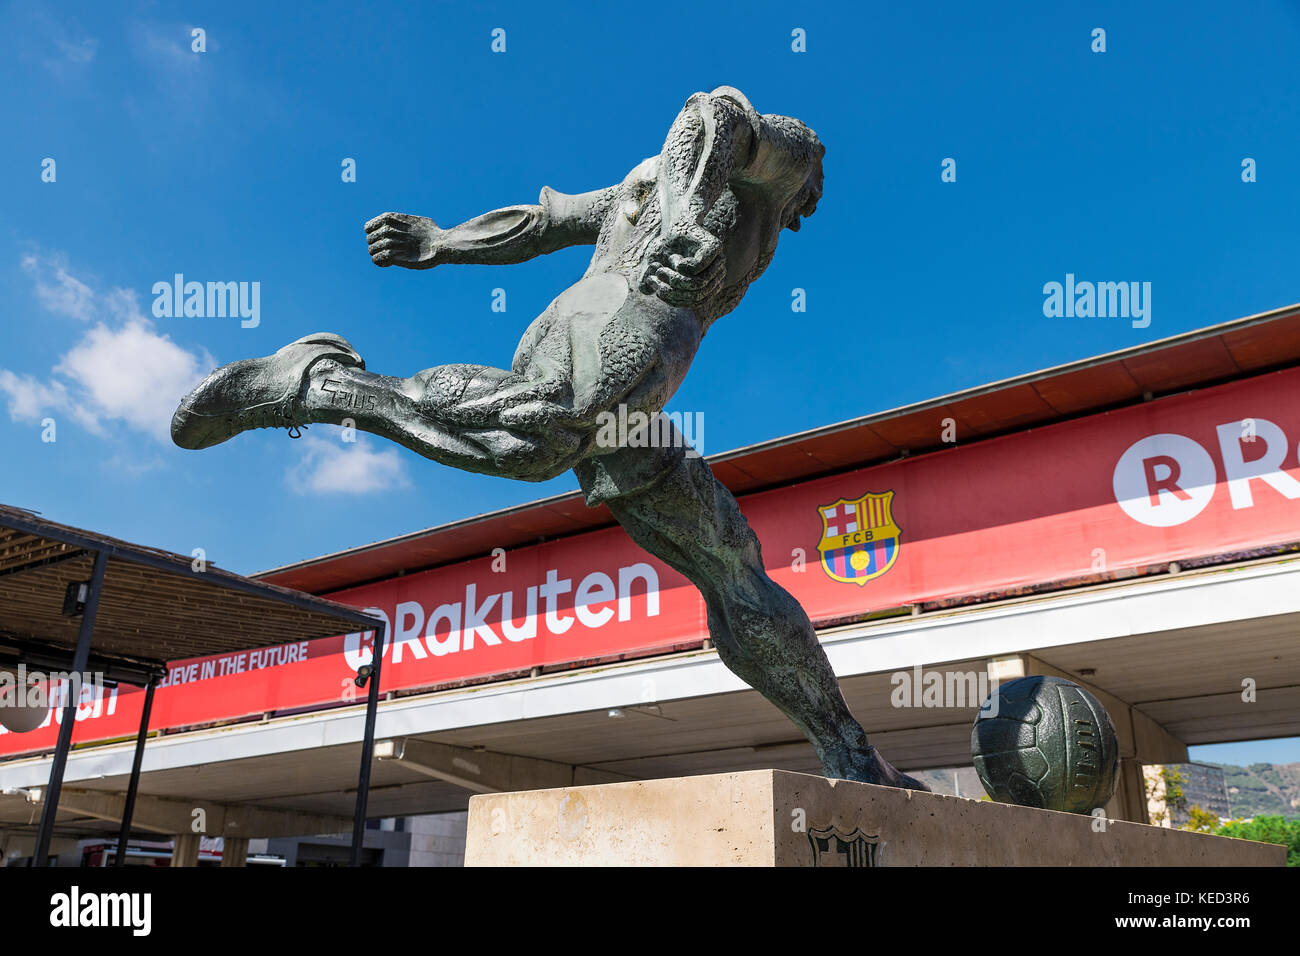 Soccer pplayer sculpture located outside of the Camp Nou stadium, Barcelona, Catalonia, Spain. - Stock Image